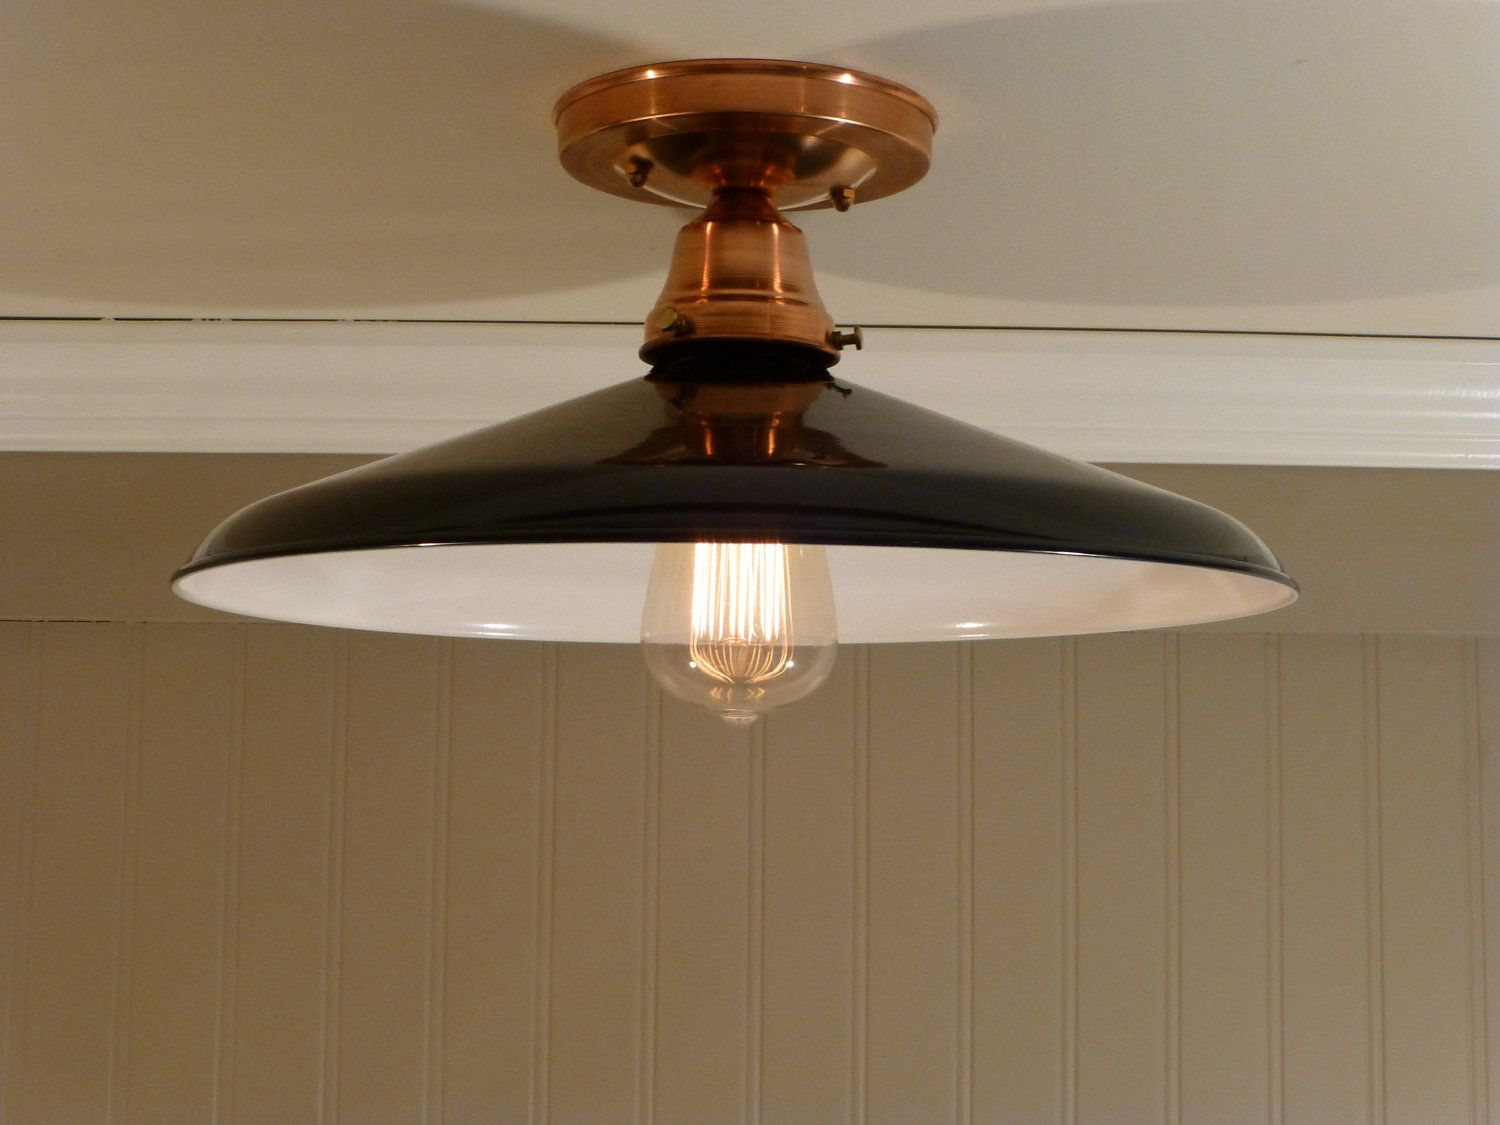 dining room lighting low ceilings | Dining room light - low ceiling | For the Home | Low ...